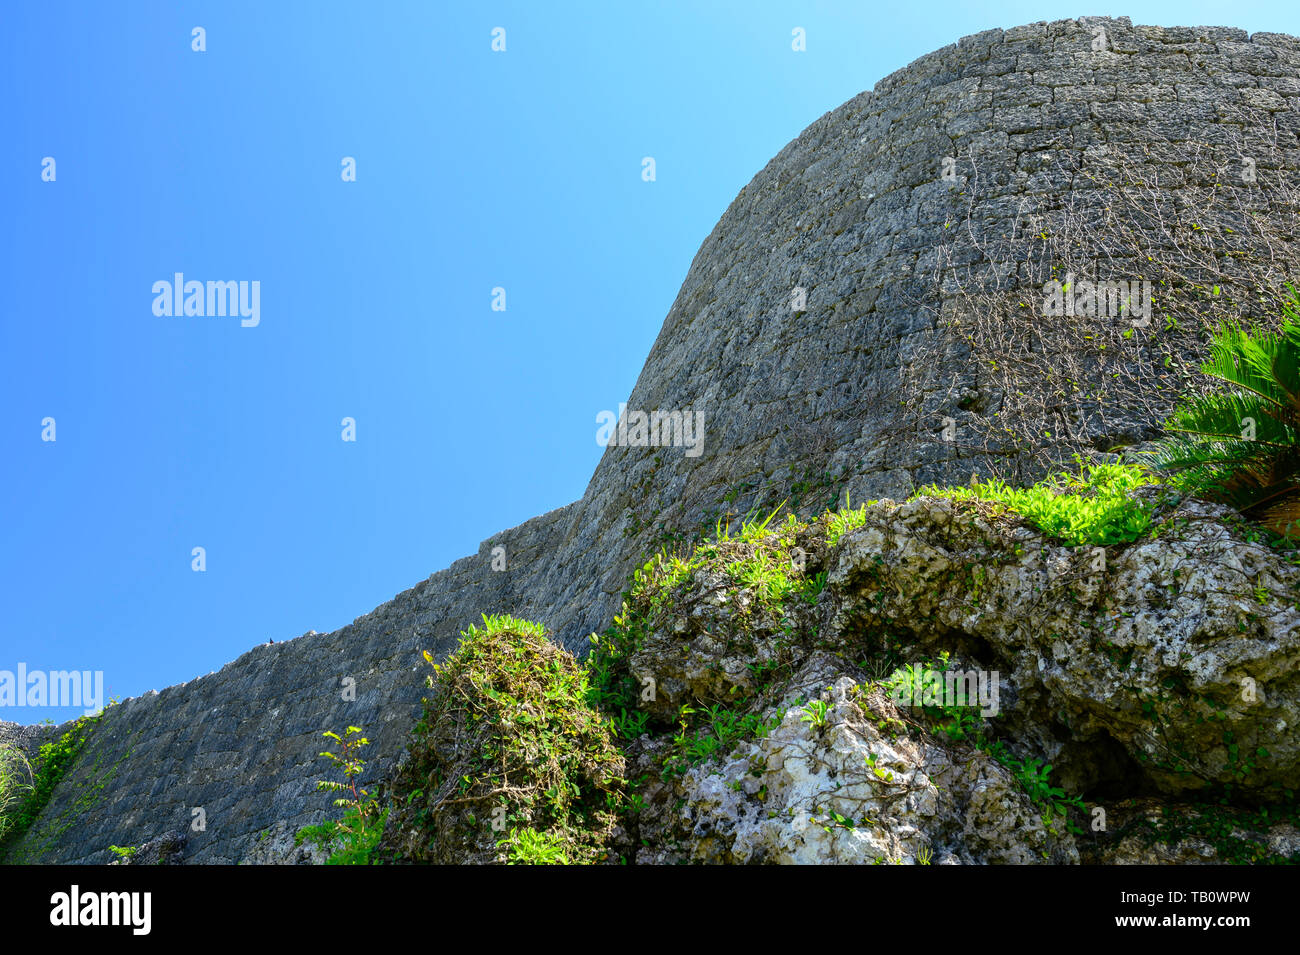 Looking up the castle walls. Invaders and defenders not included. - Stock Image